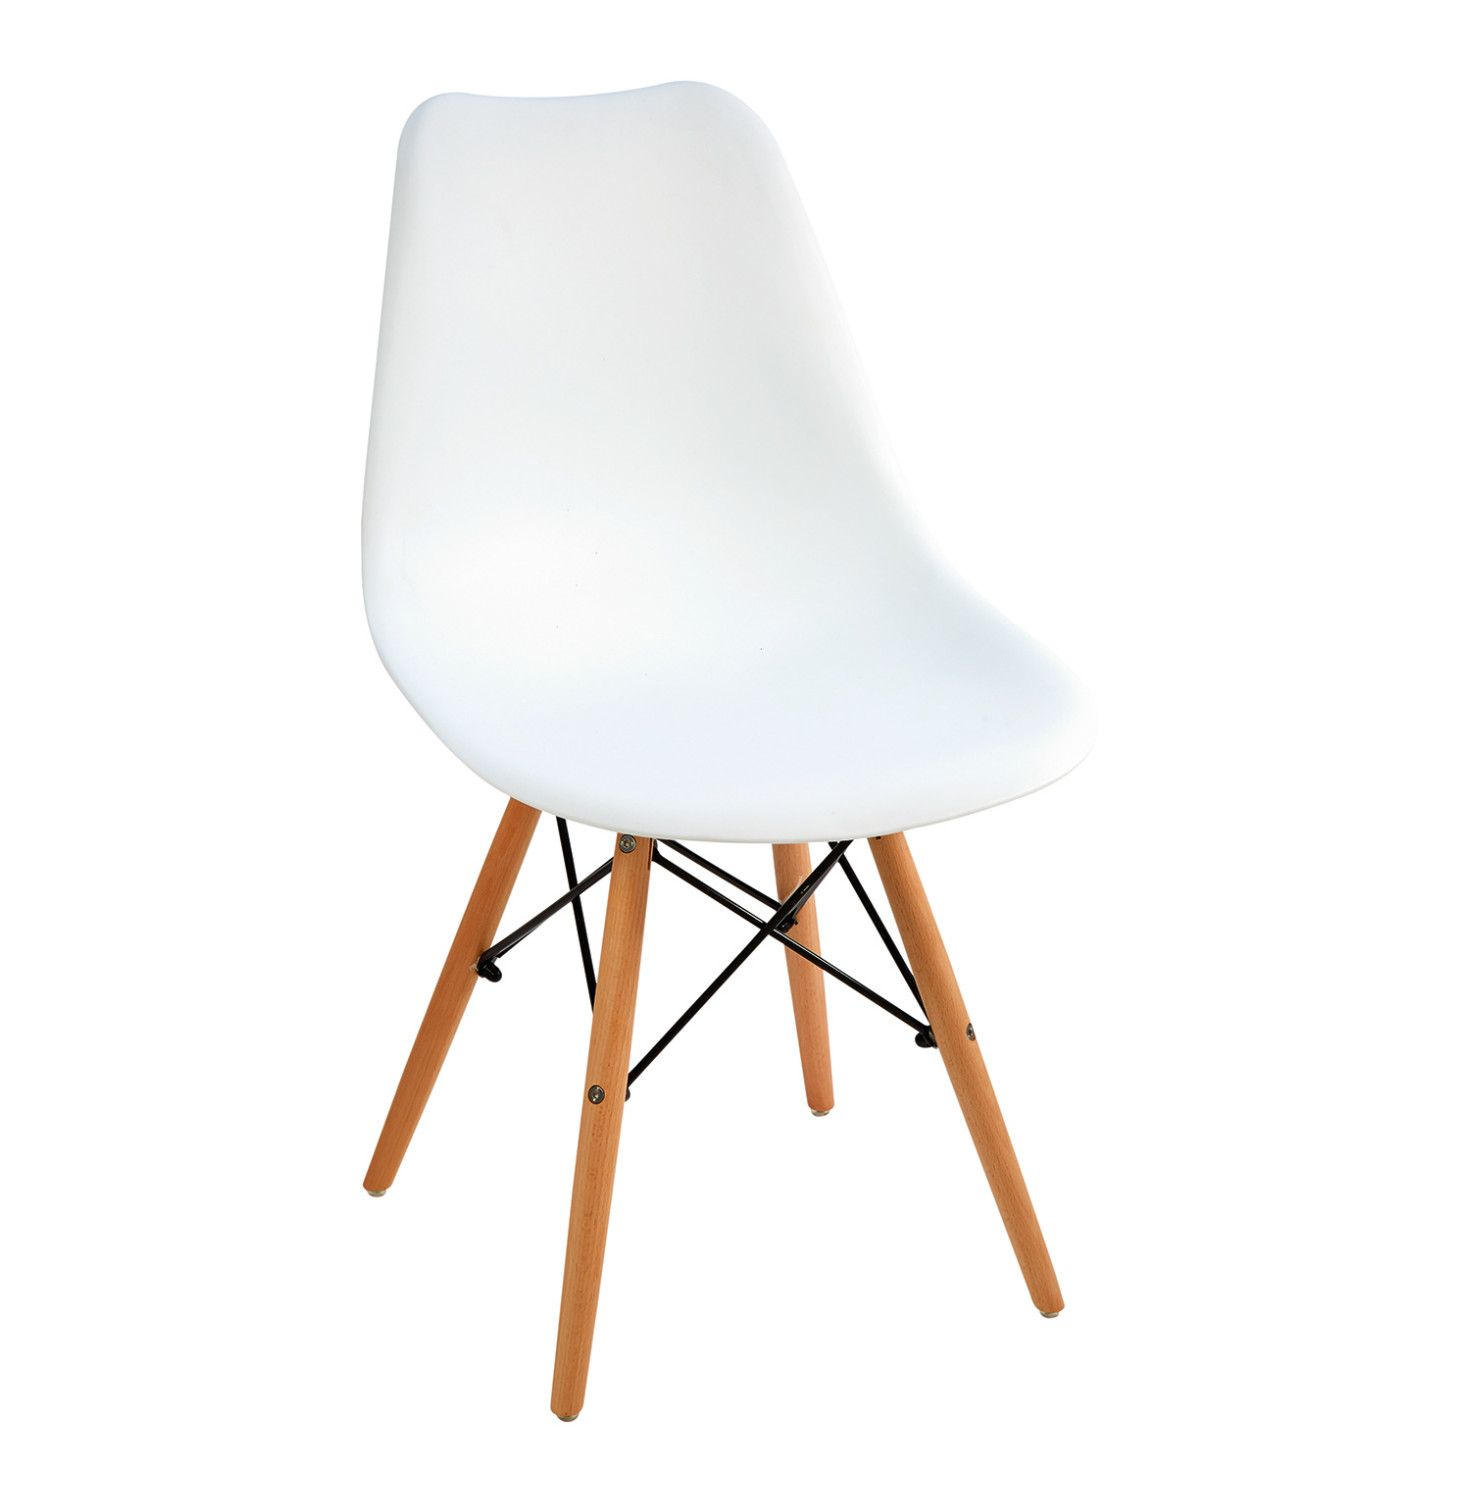 ADDIS Shell Chair  Makro Online  Chair, Shell chair, Home furniture